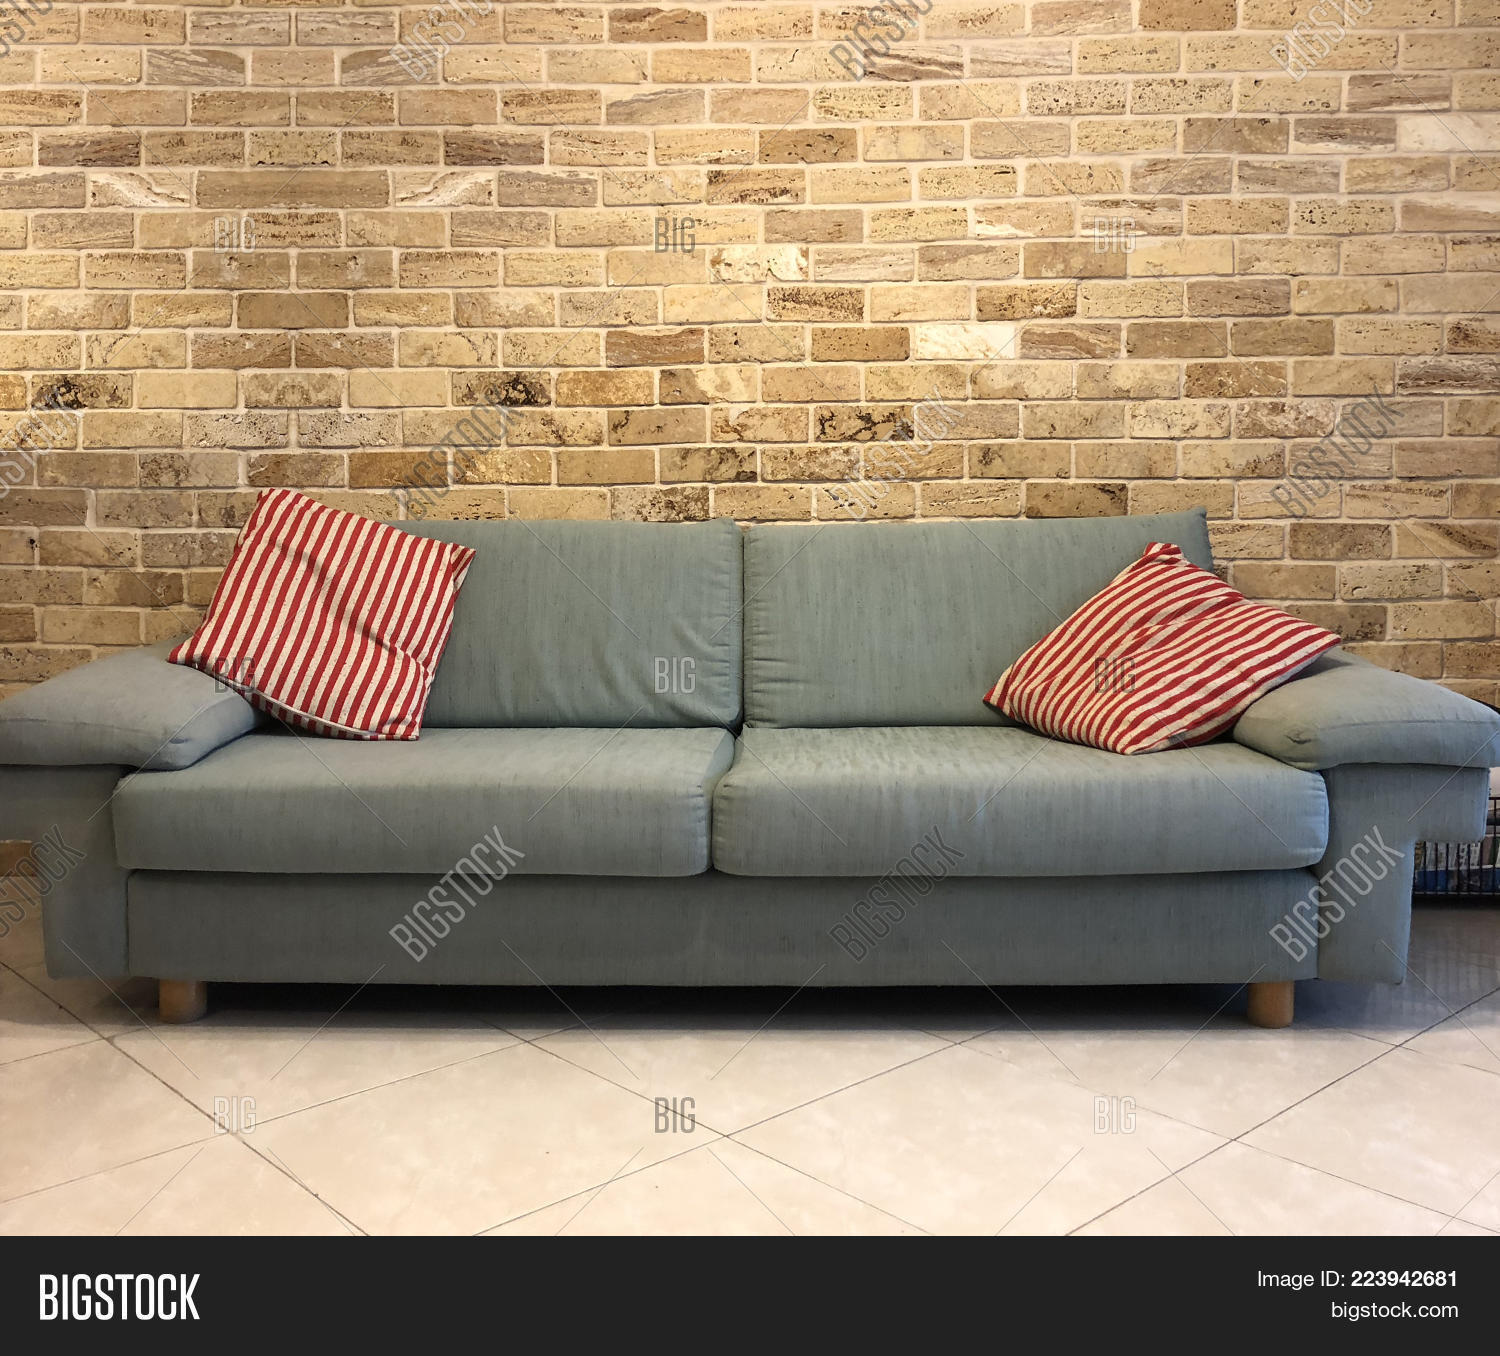 Green Sofa Red Striped Image & Photo (Free Trial) | Bigstock